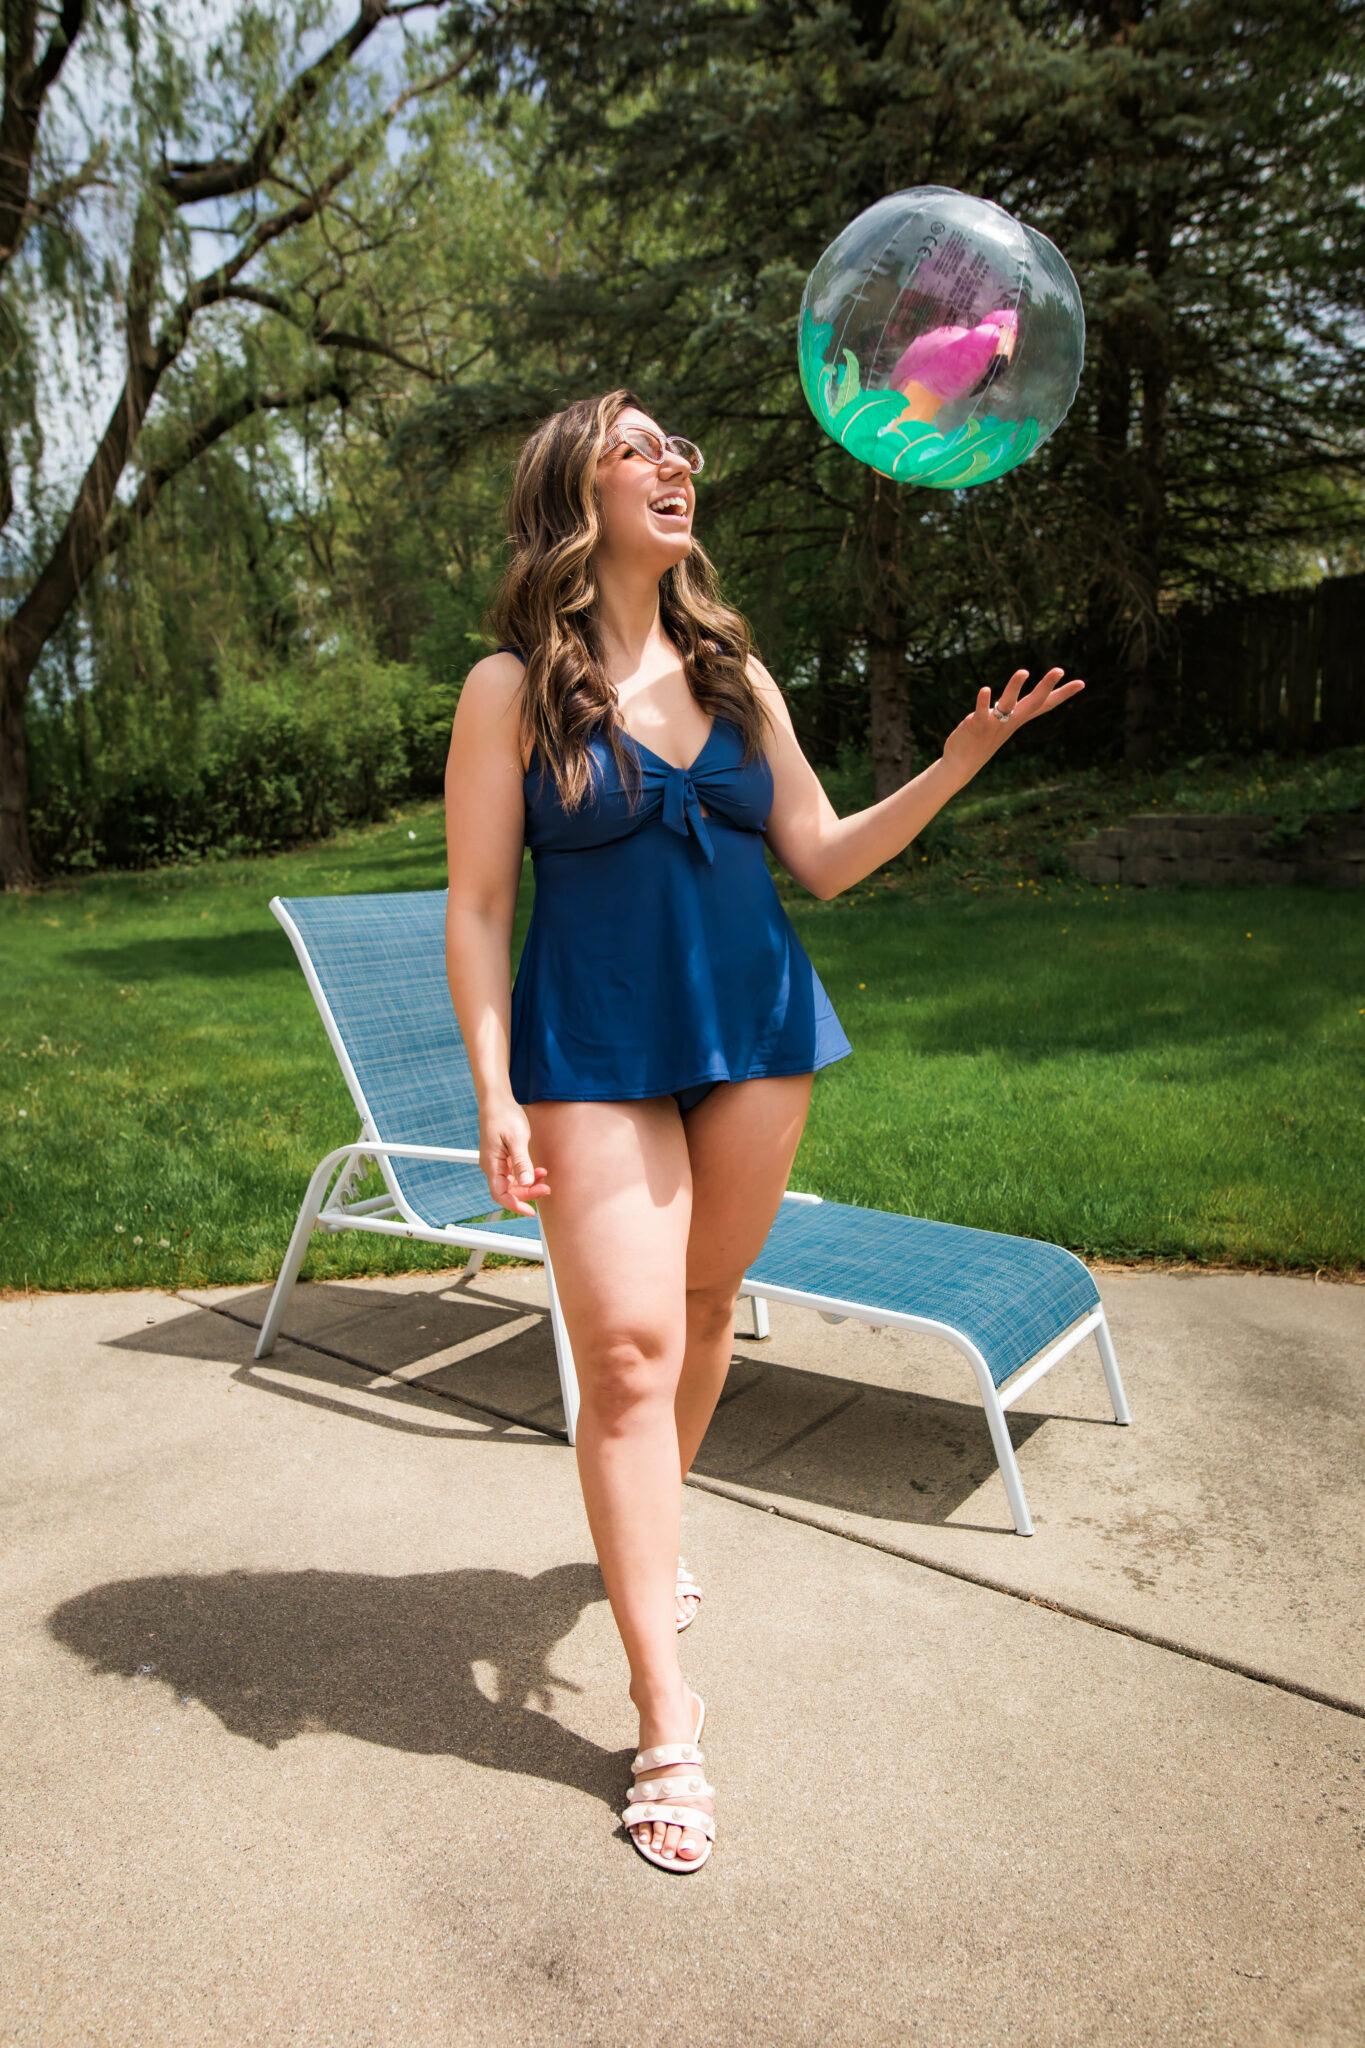 Best Swimsuits for Mom by popular Chicago fashion blog, Glass of Glam: image of a woman holding a beach ball and wearing a blue Bare Necessities two piece with white strap slide sandals.